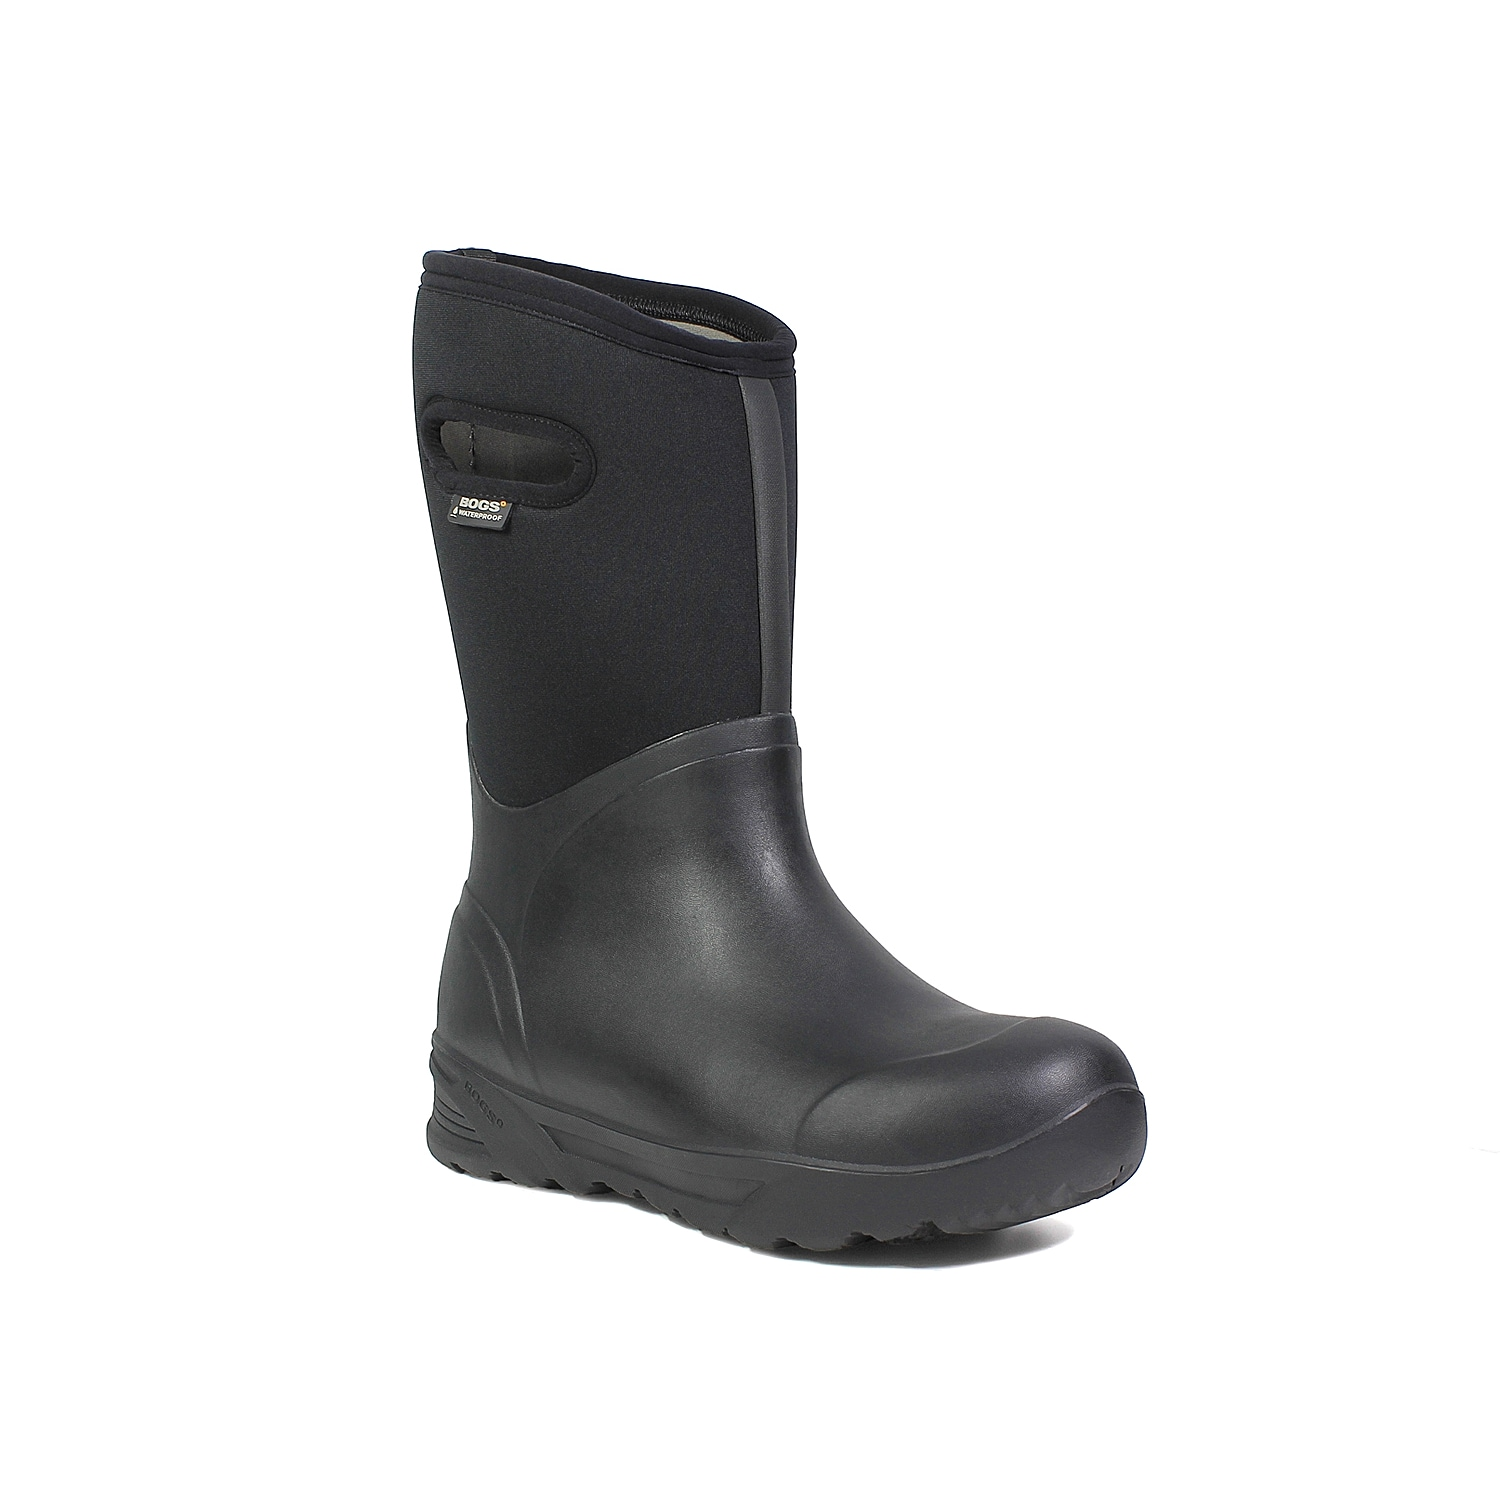 The Bozeman snow boot from Bogs is an all-weather style fit for all your activities. These waterproof boots feature a temperature-rated design that can withstand any working condition.